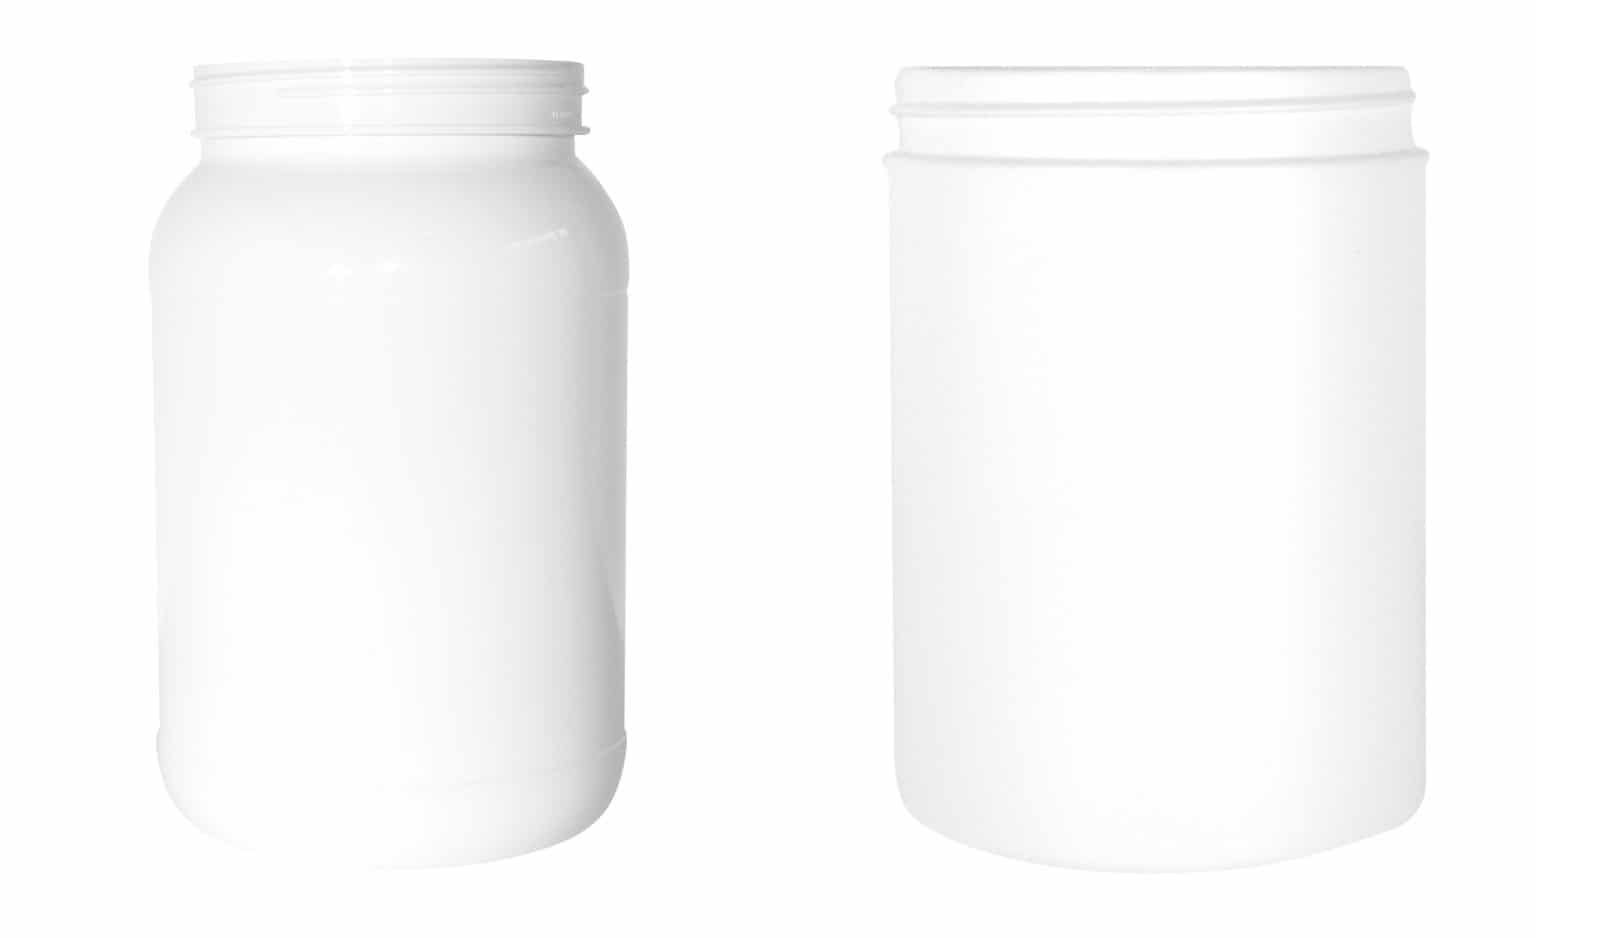 cylindar-round-white-jar-for-private-label-powder-sports-supplements-pharma-manufacture